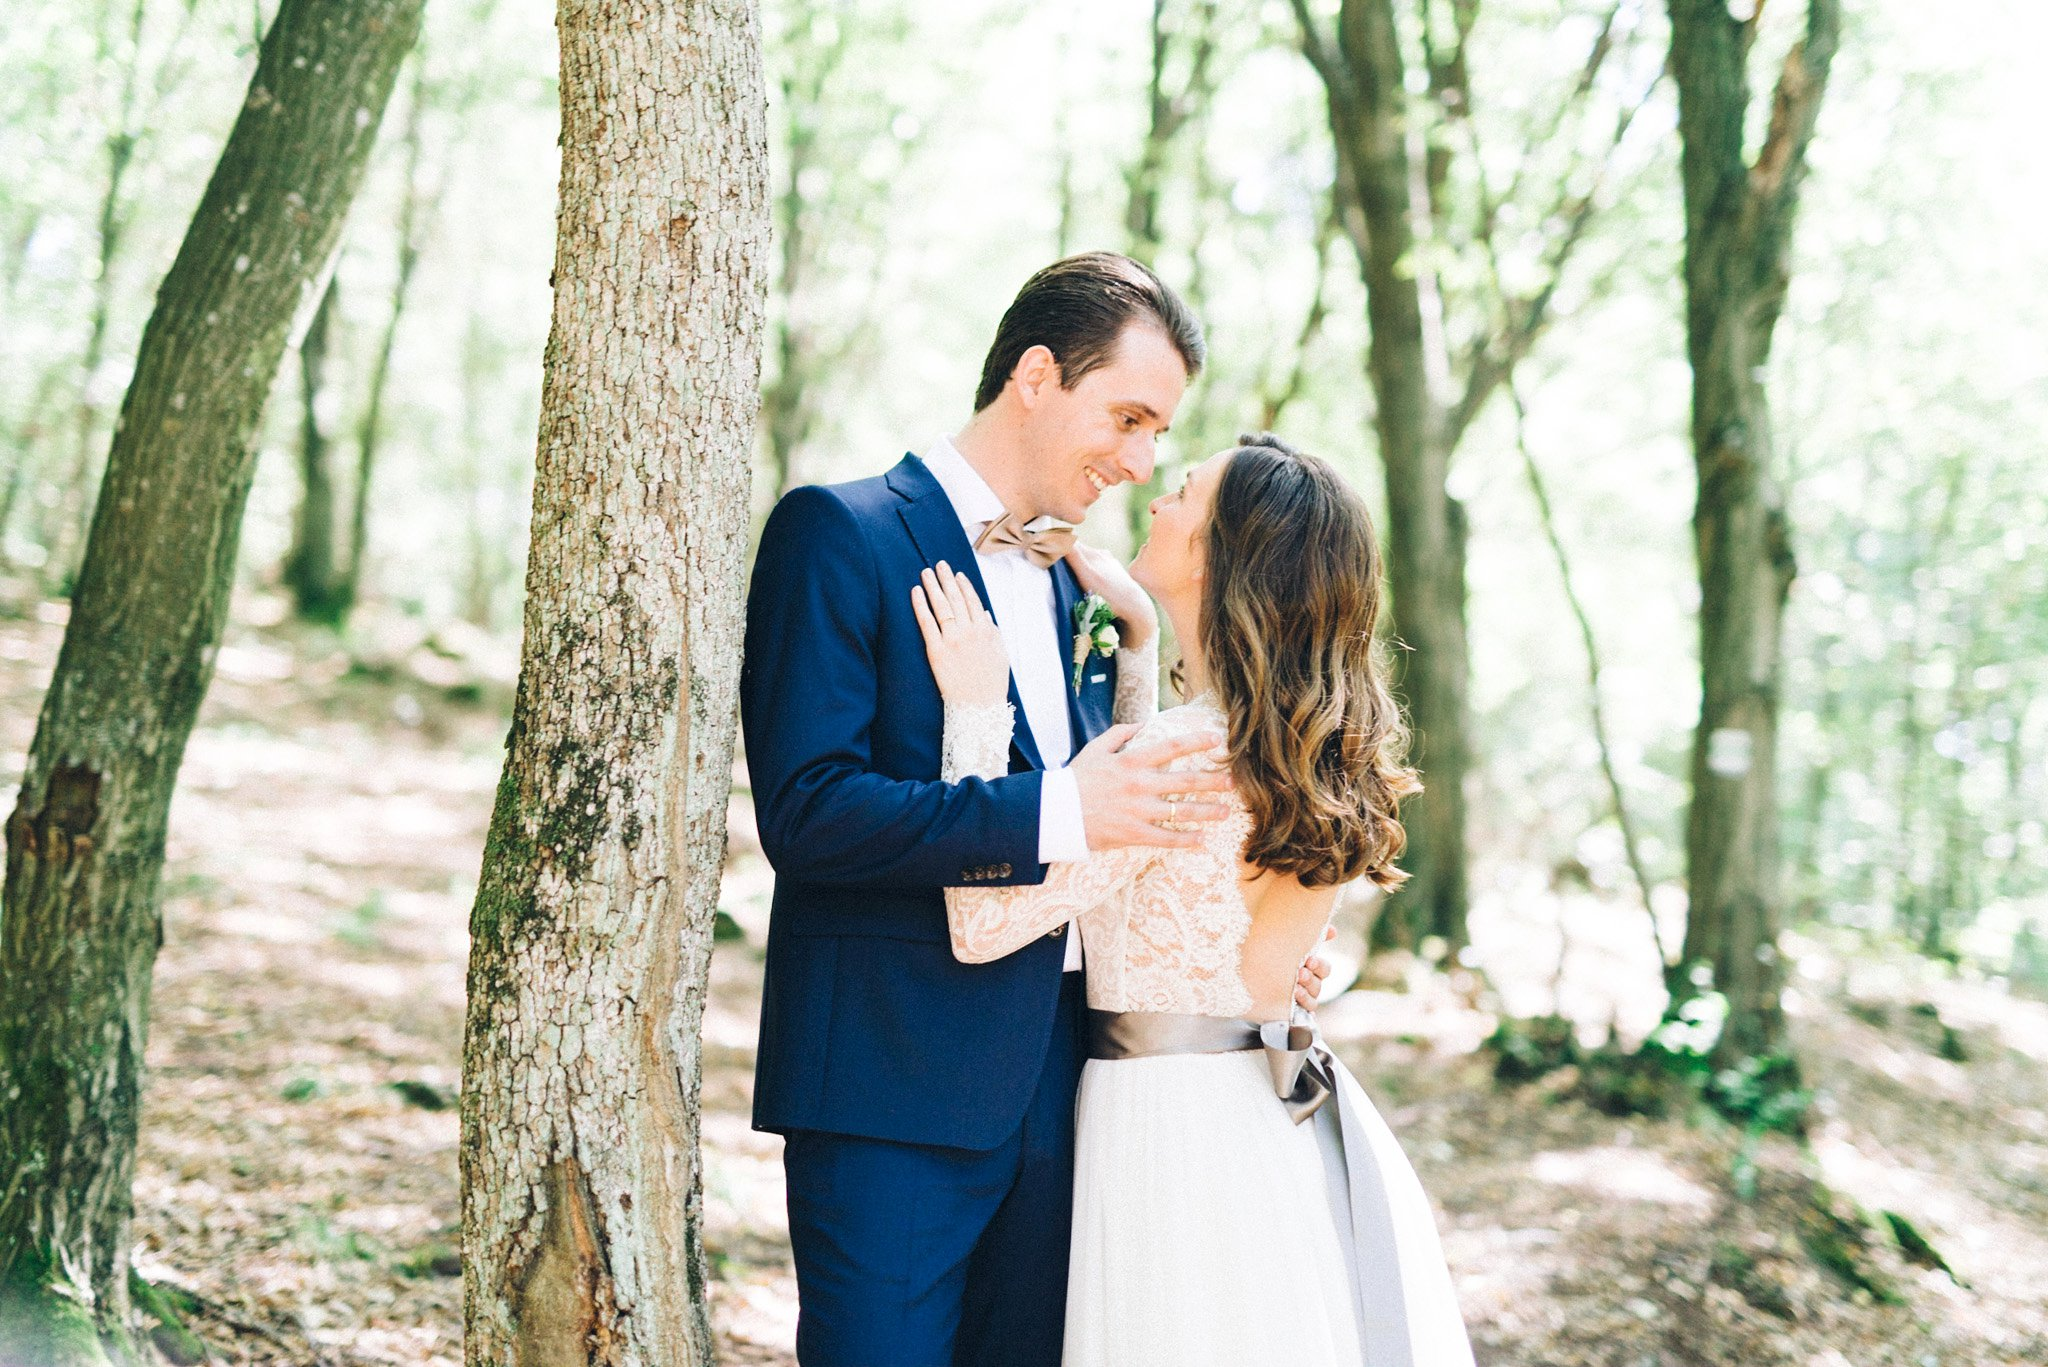 26-bride-portrait-forest-wedding